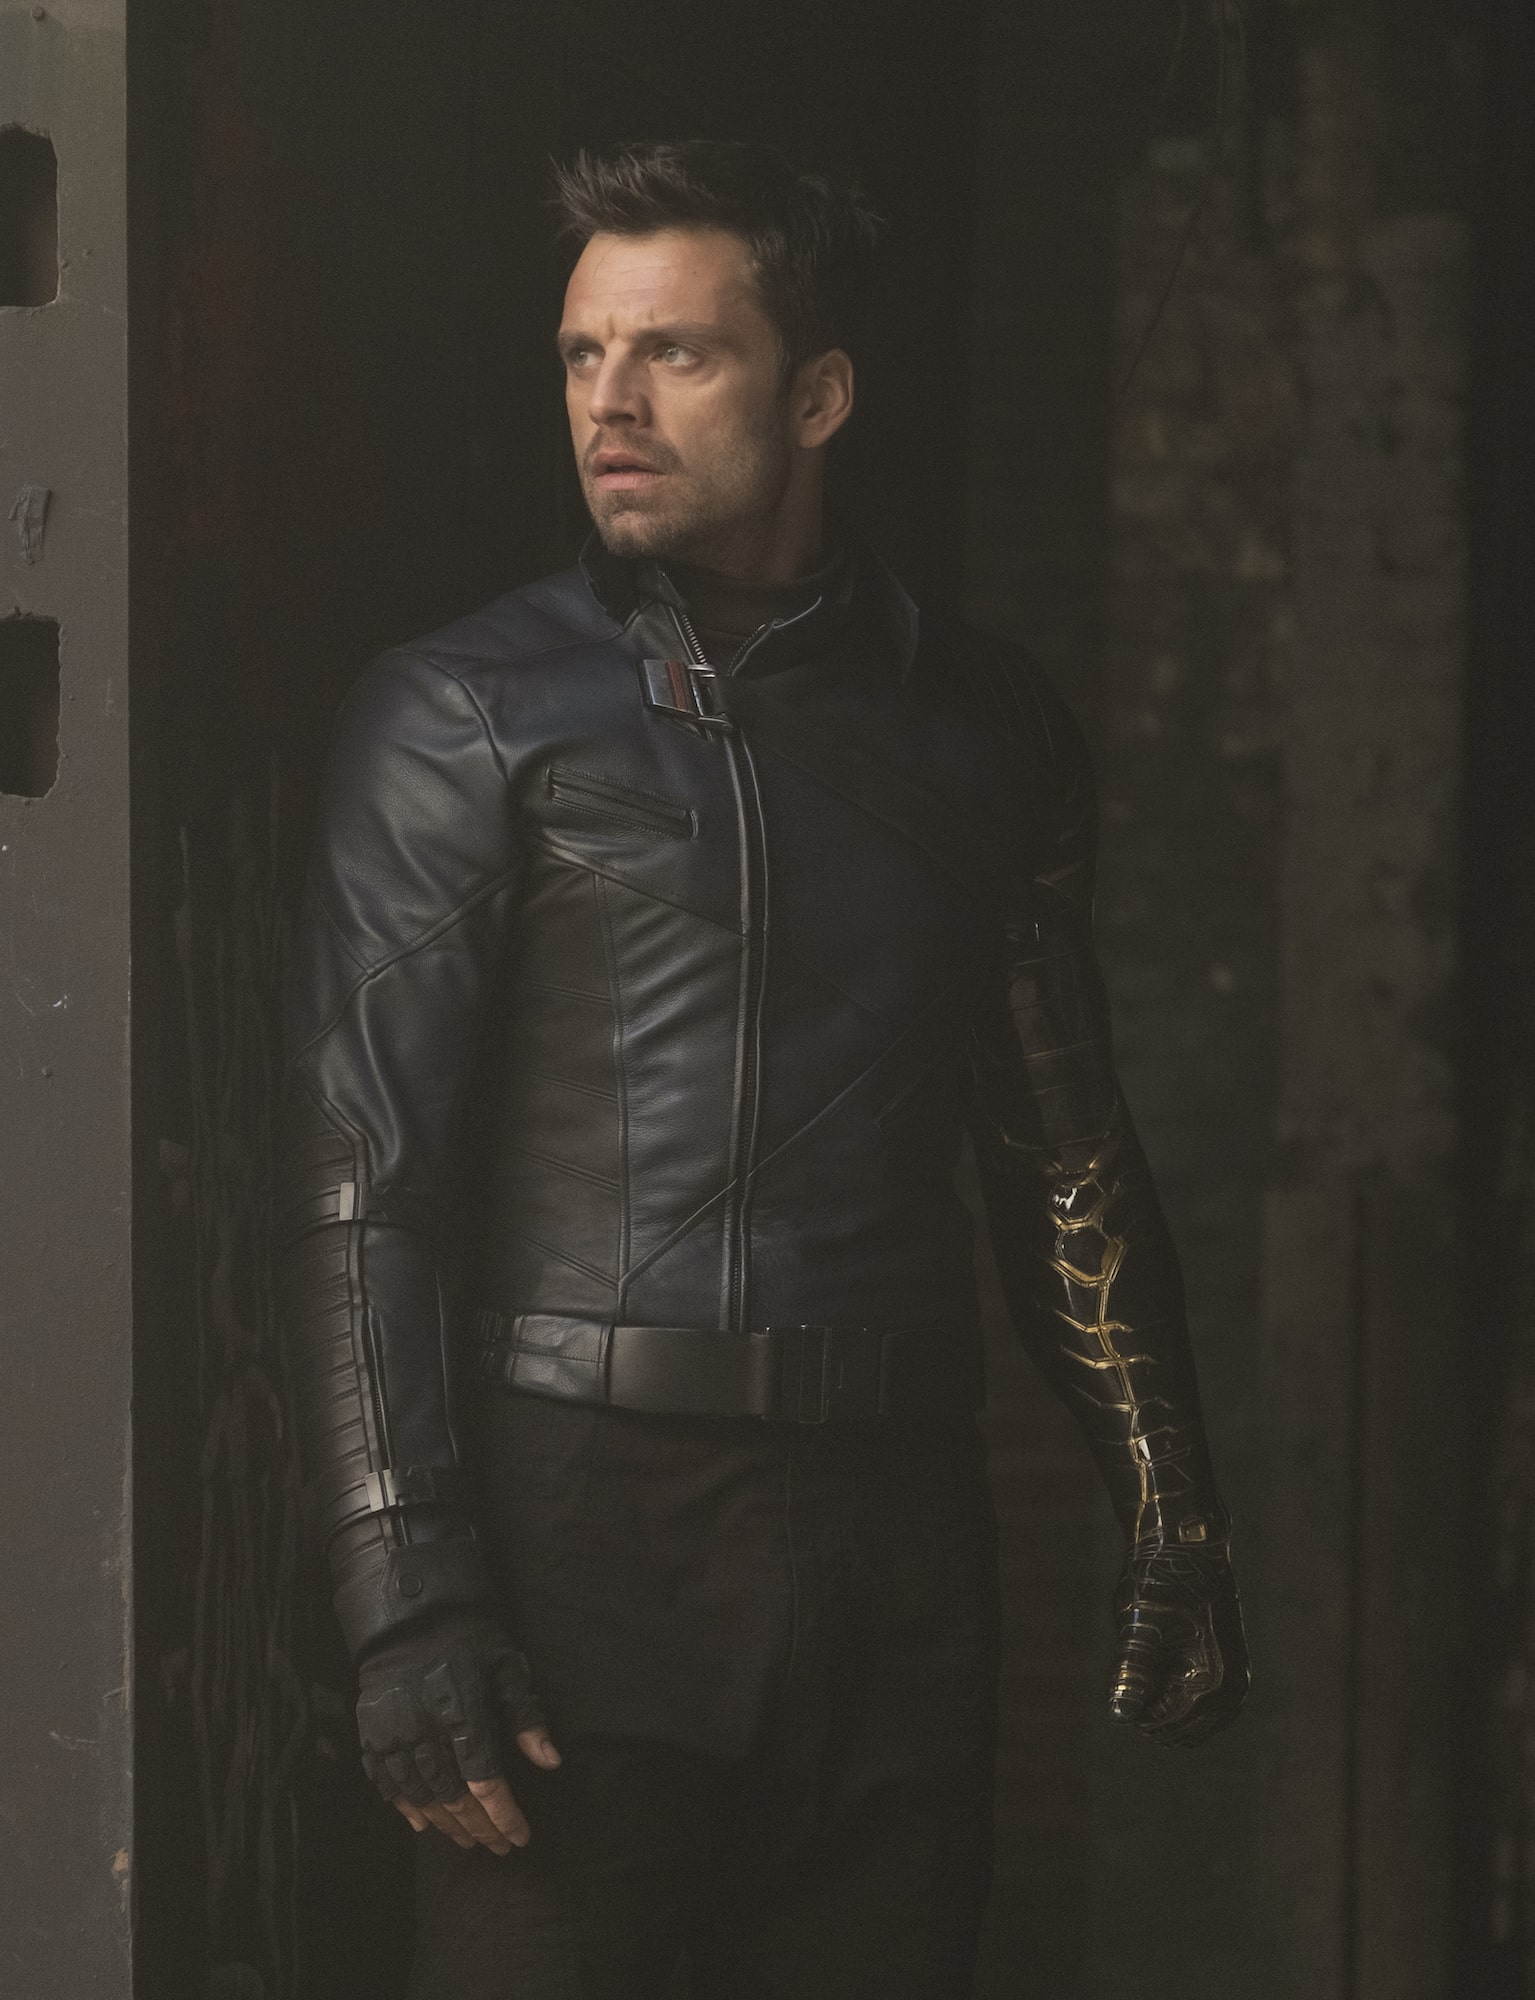 Bucky Barnes/The Winter Soldier (Sebastian Stan) in Marvel Studios' THE FALCON AND THE WINTER SOLDIER exclusively on Disney+. Photo by Chuck Zlotnick. Credit Marvel Studios 2021. All Rights Reserved.